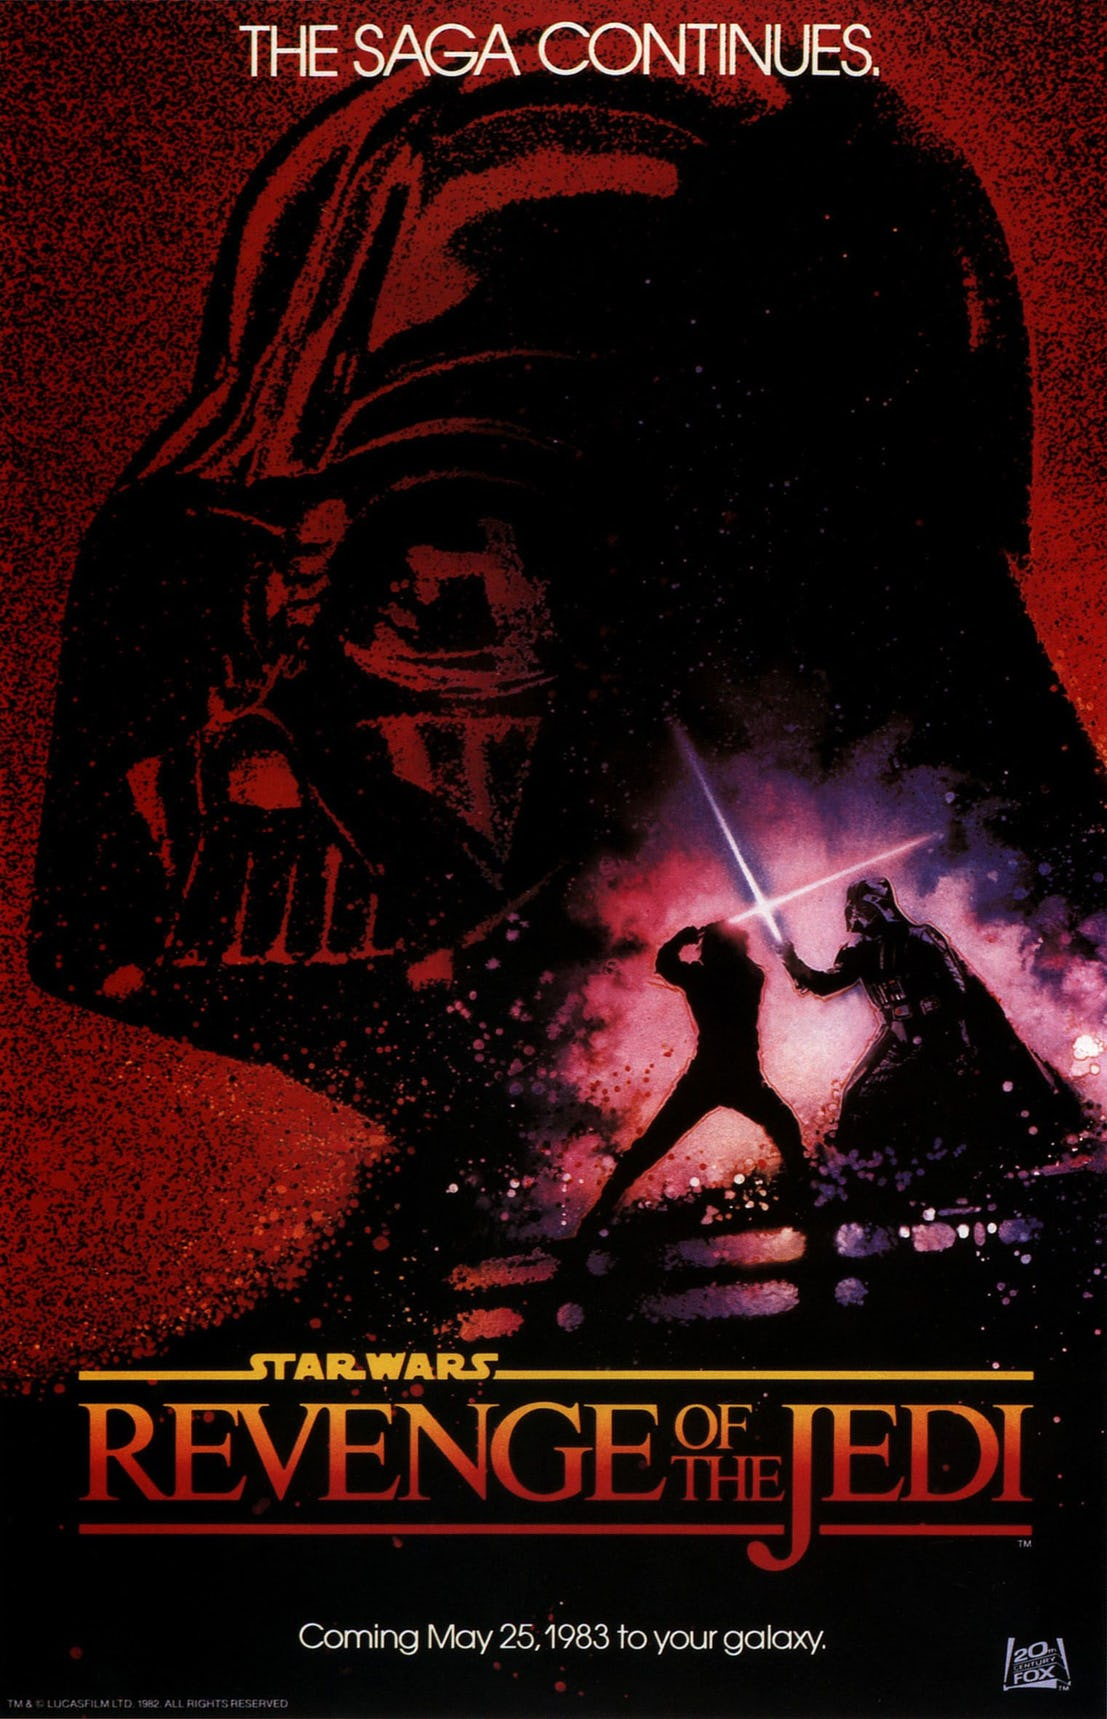 Here S The Real Reason Star Wars Episode Vi Was Originally Titled Revenge Of The Jedi